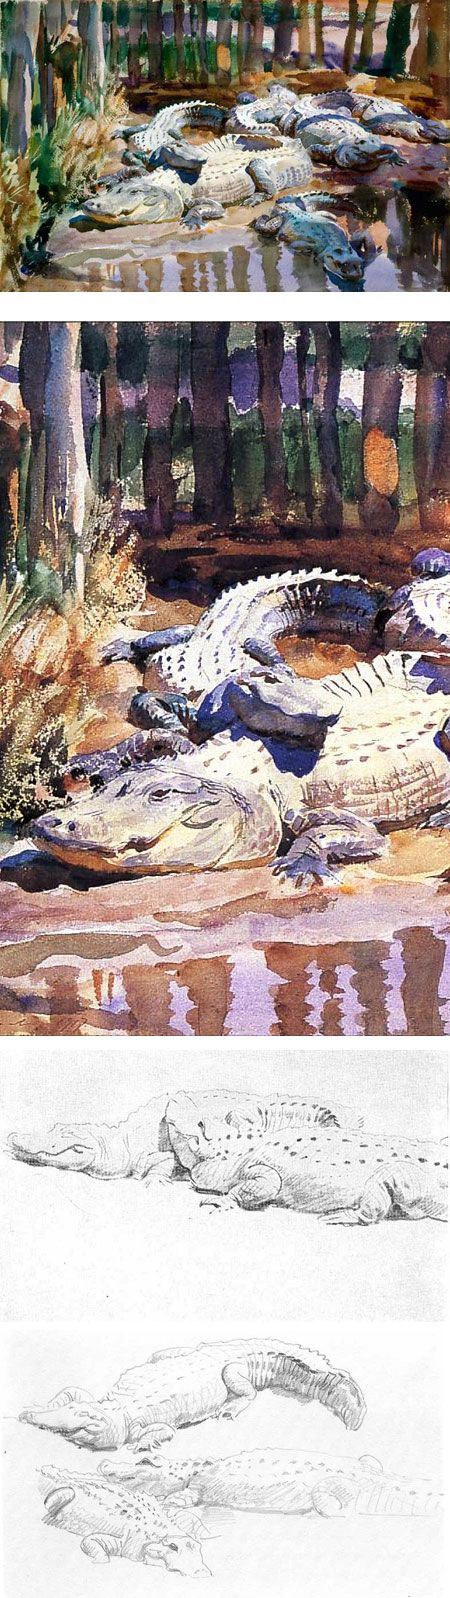 John Singer Sargent's beautiful watercolor of Muddy Alligators, and some related drawings